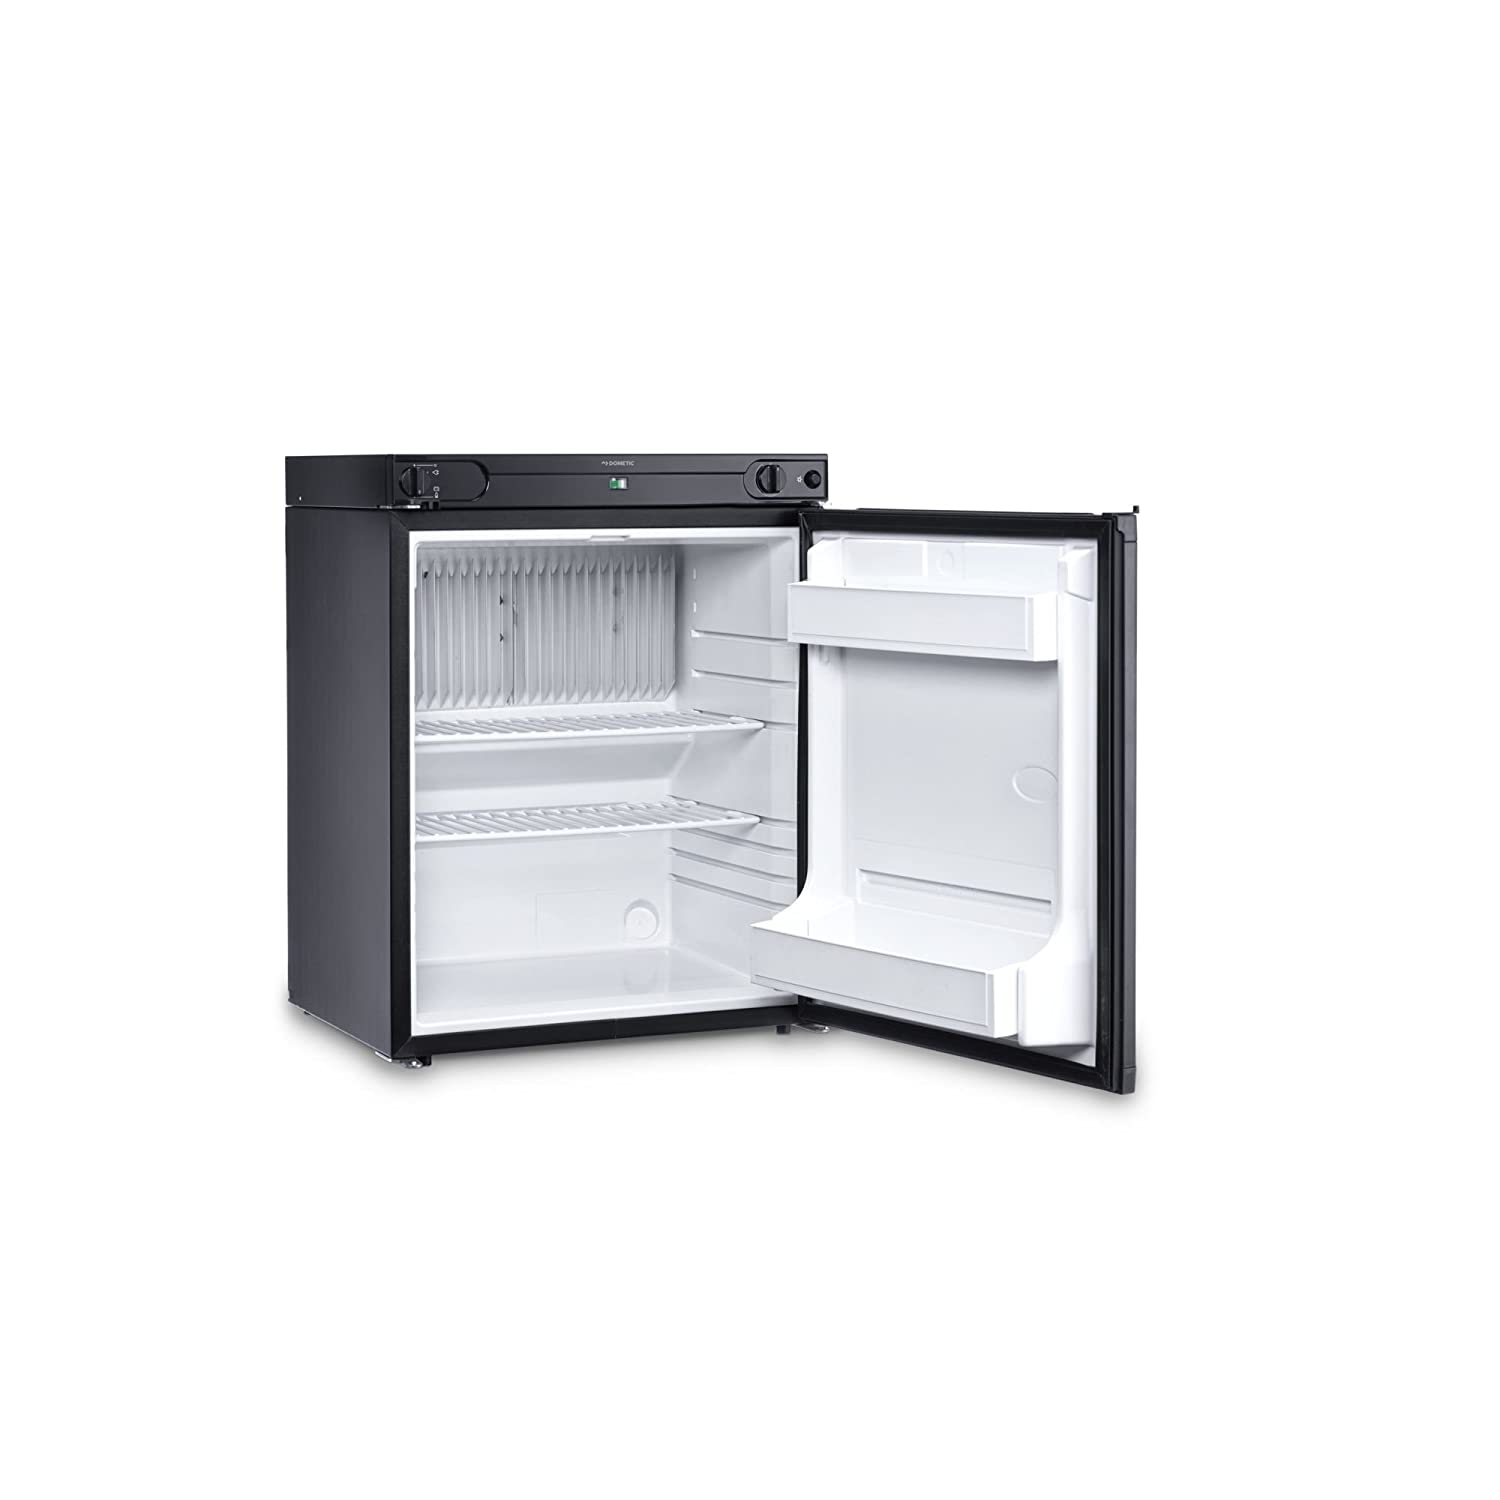 Dometic CombiCool RF60 Fridge, 12 V/230 V/Gas